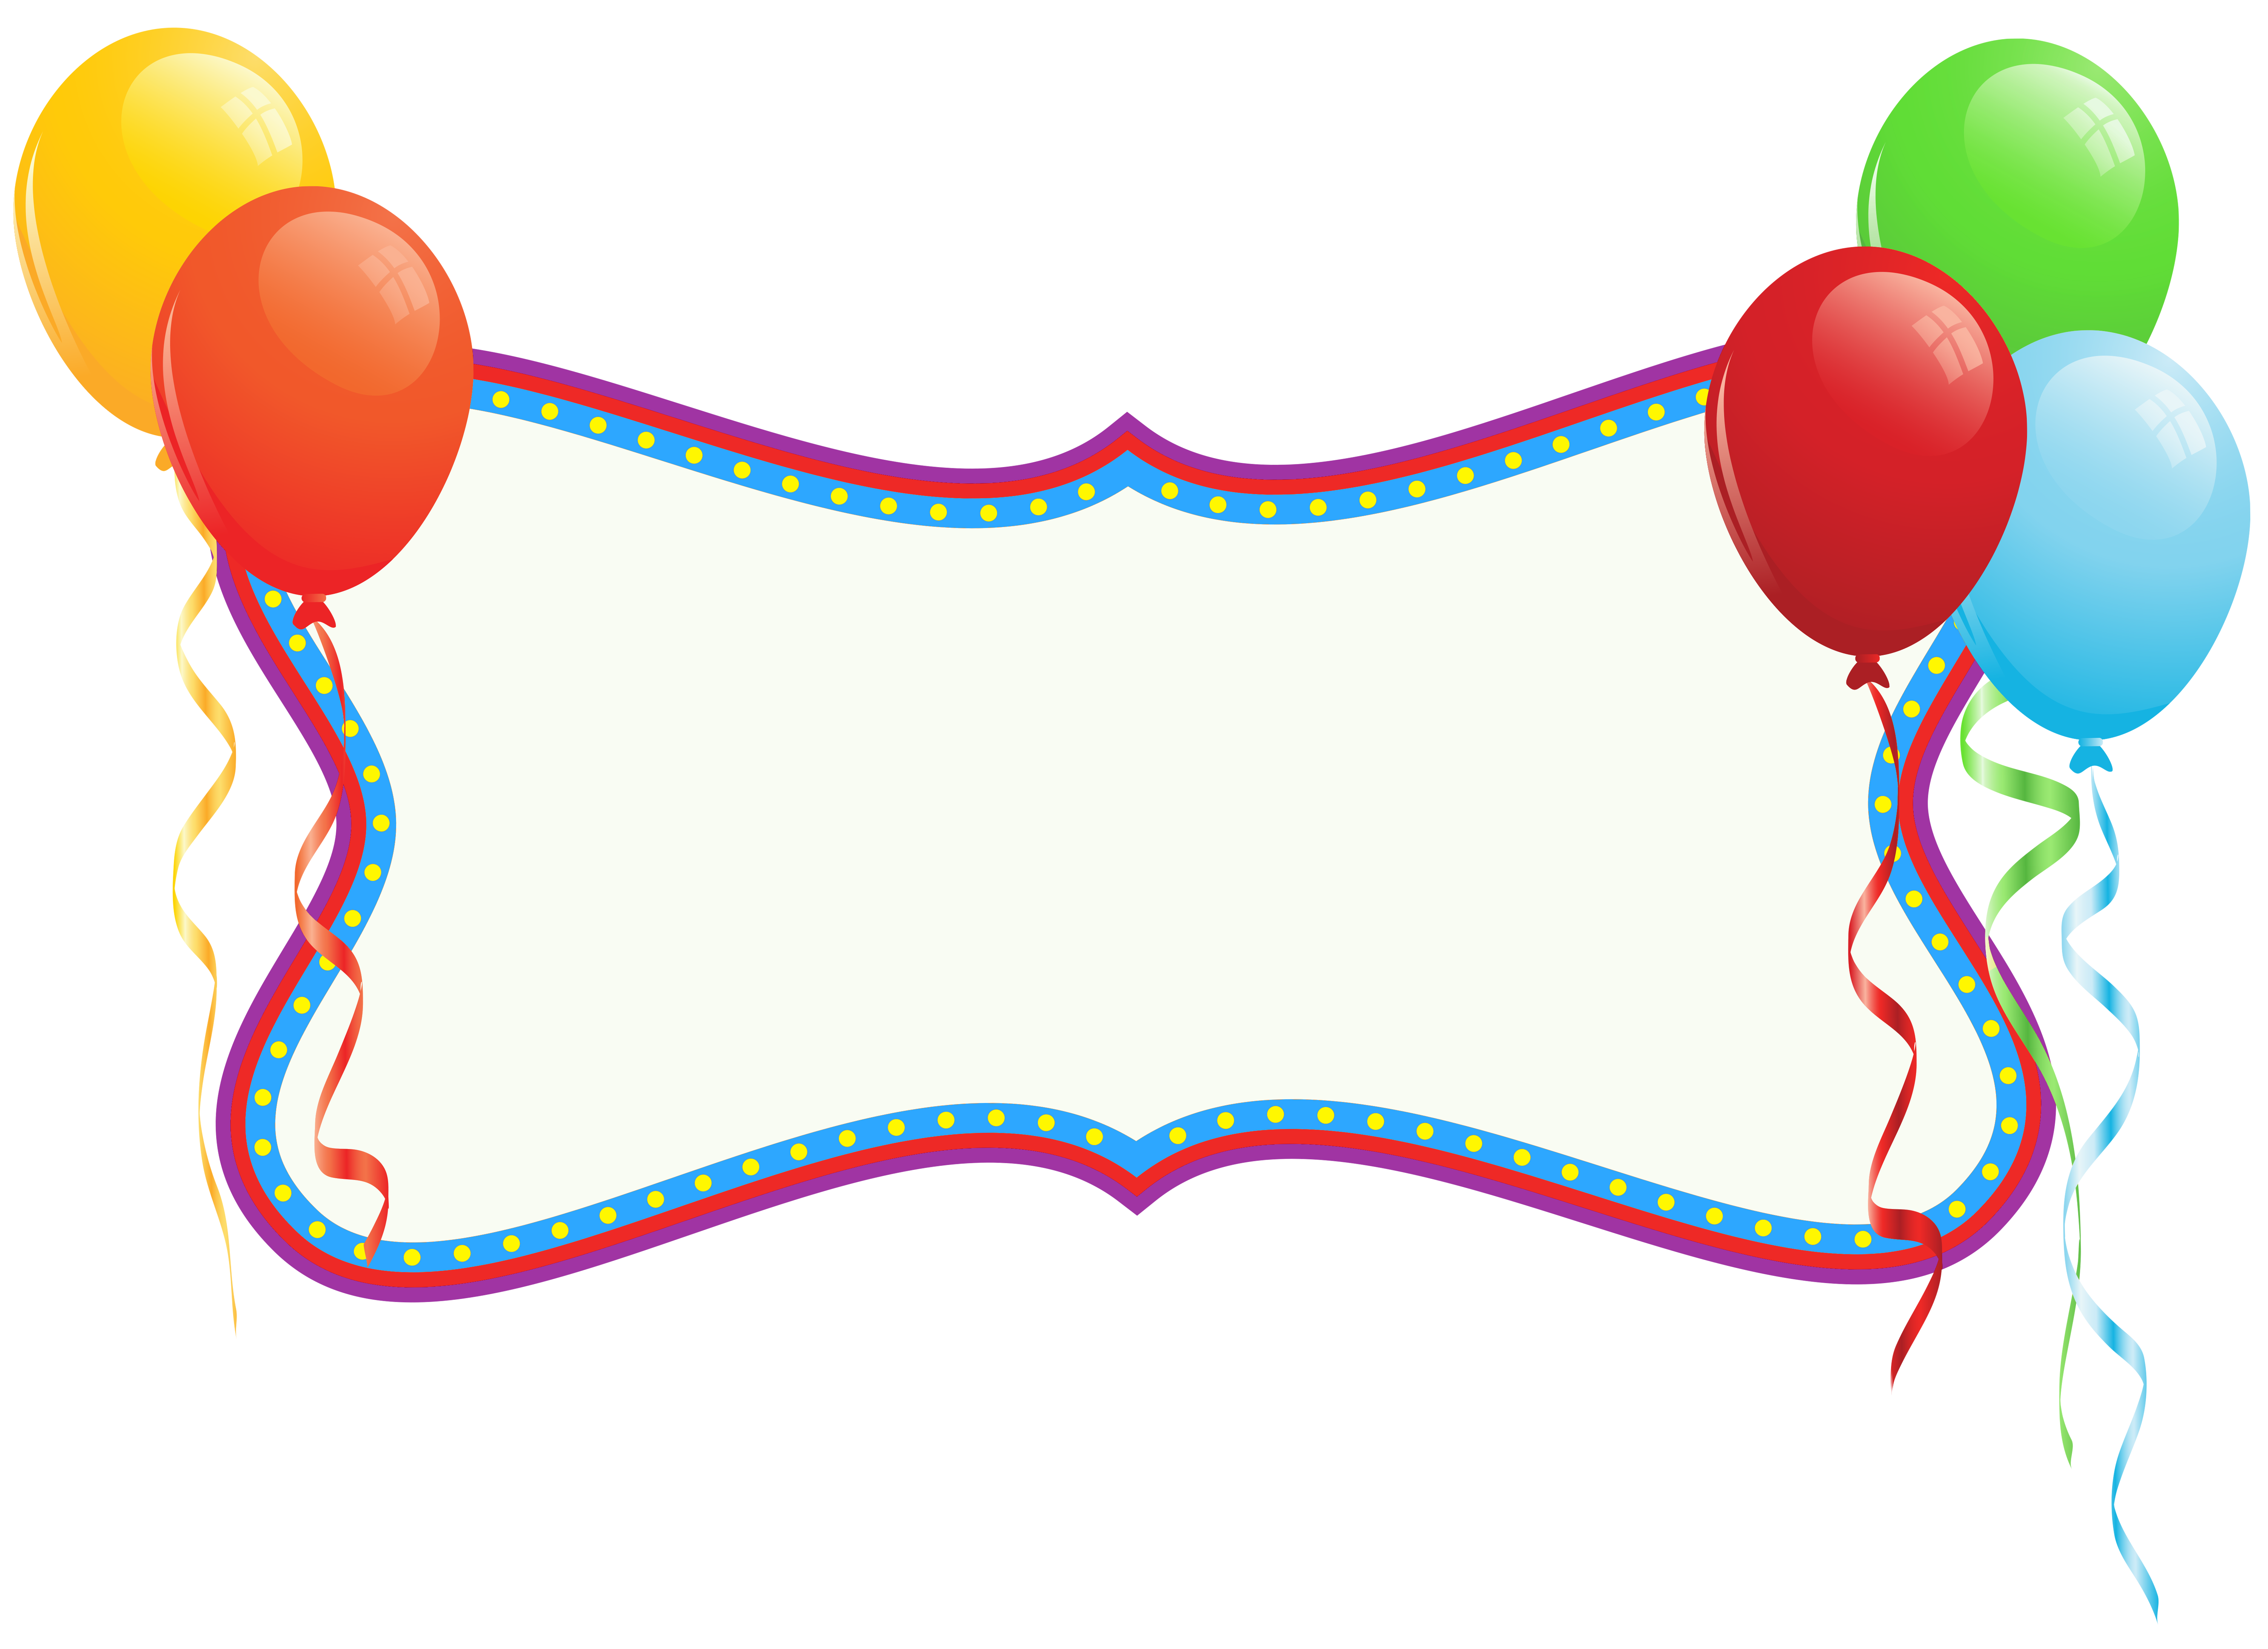 Clipart balloon booth. Birthday holiday banner with